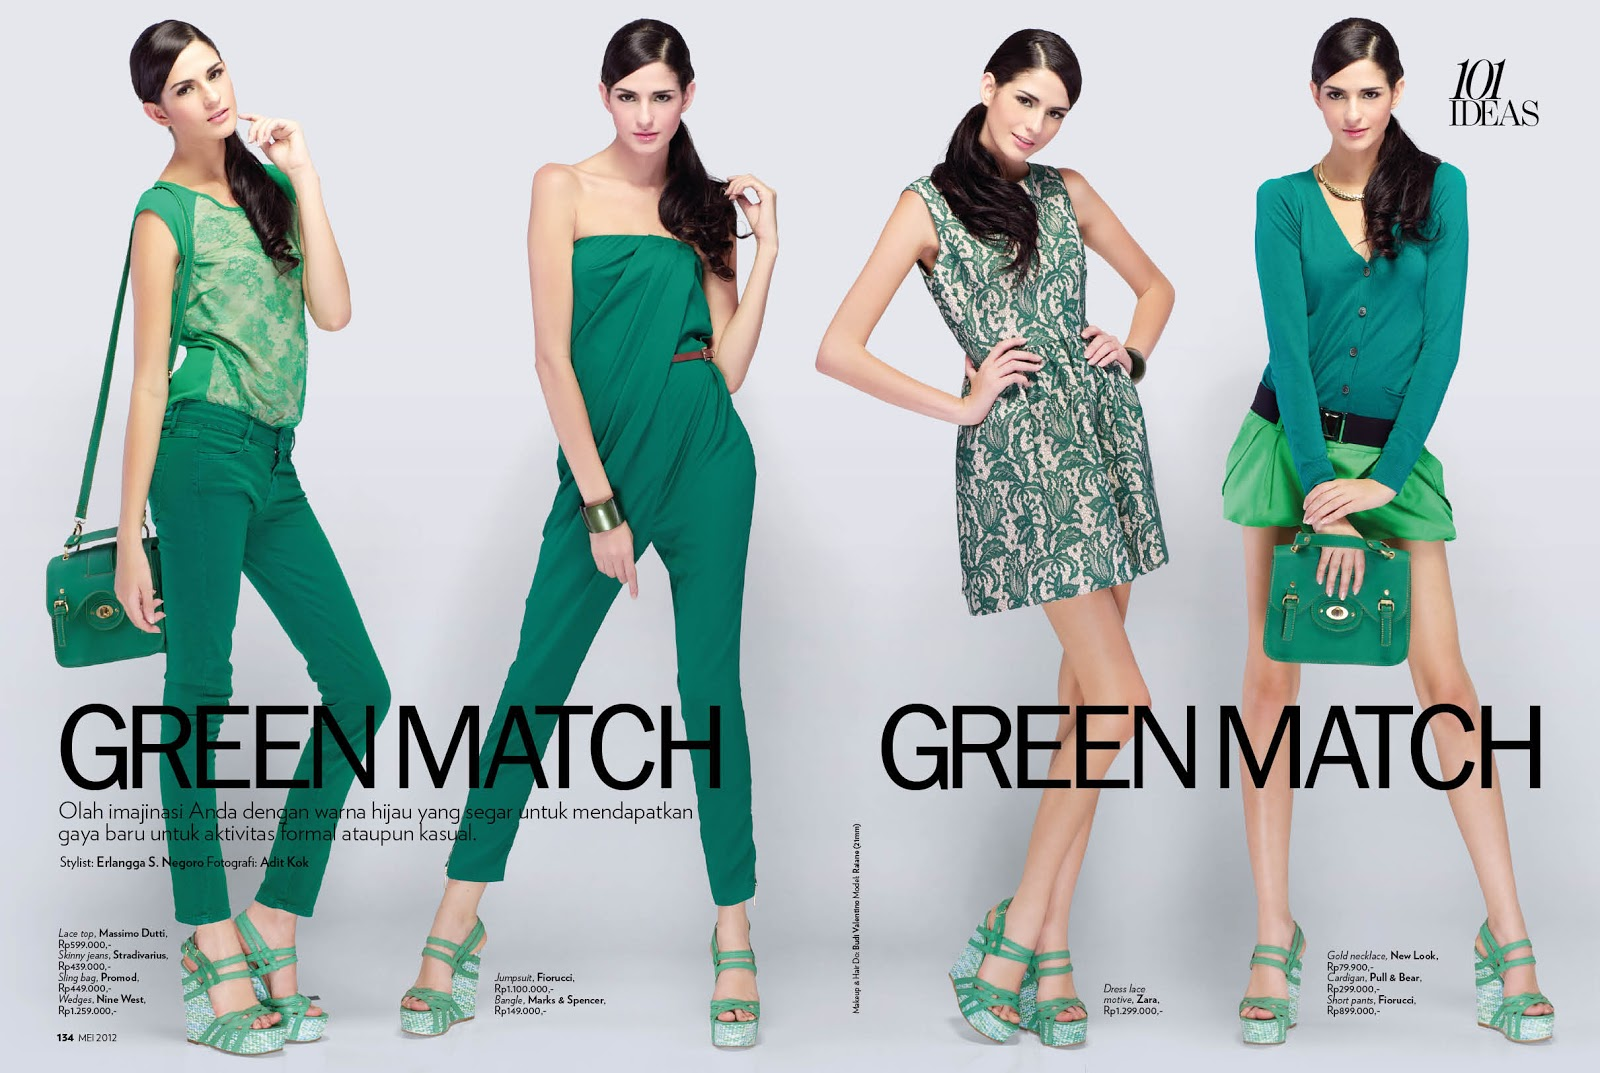 Style Versa: Marie Claire Indonesia, May 2012 : 101 Ideas